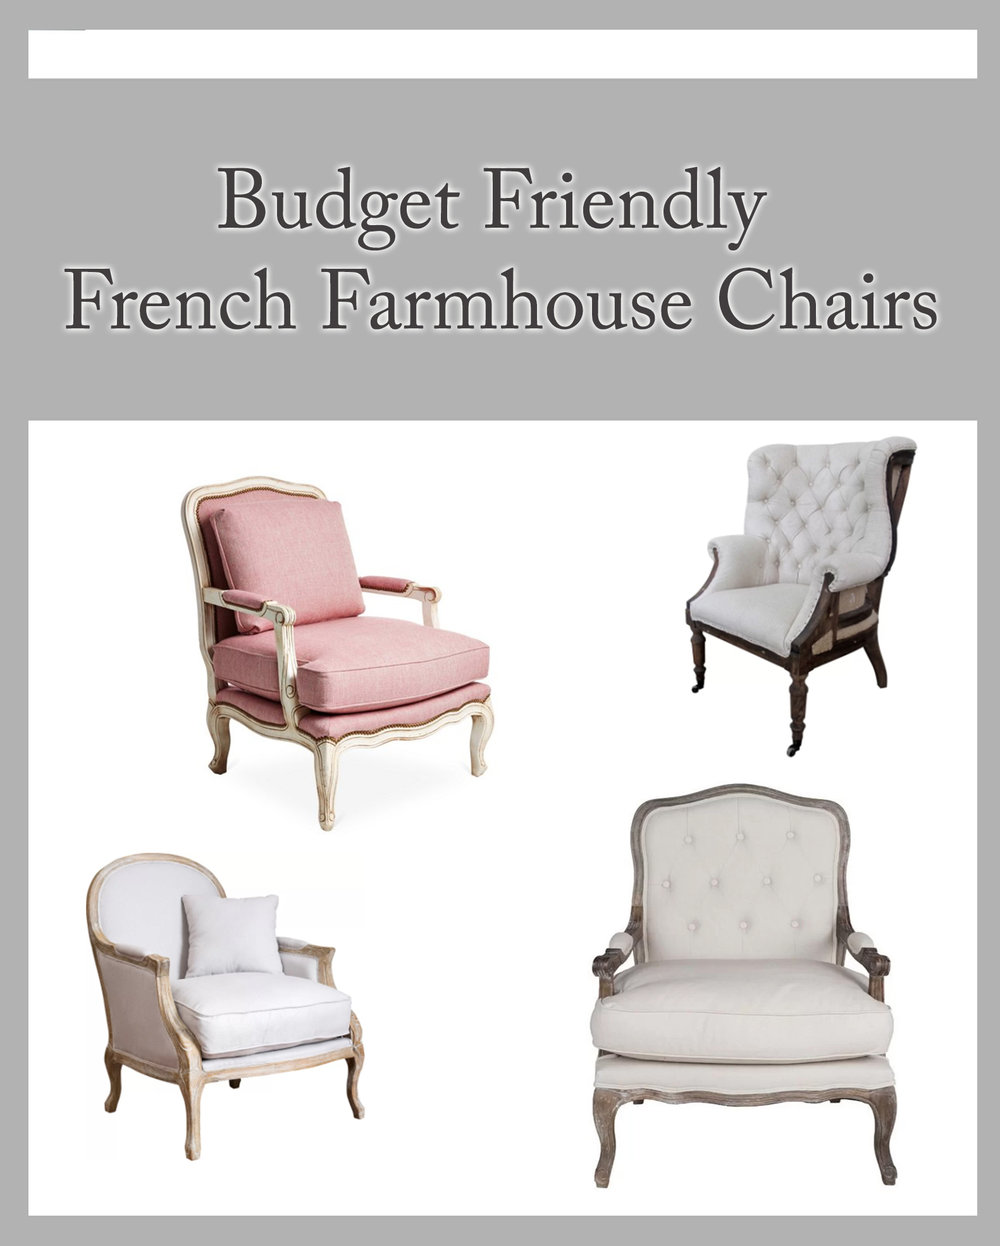 Best Budget Friendly French Farmhouse Chairs